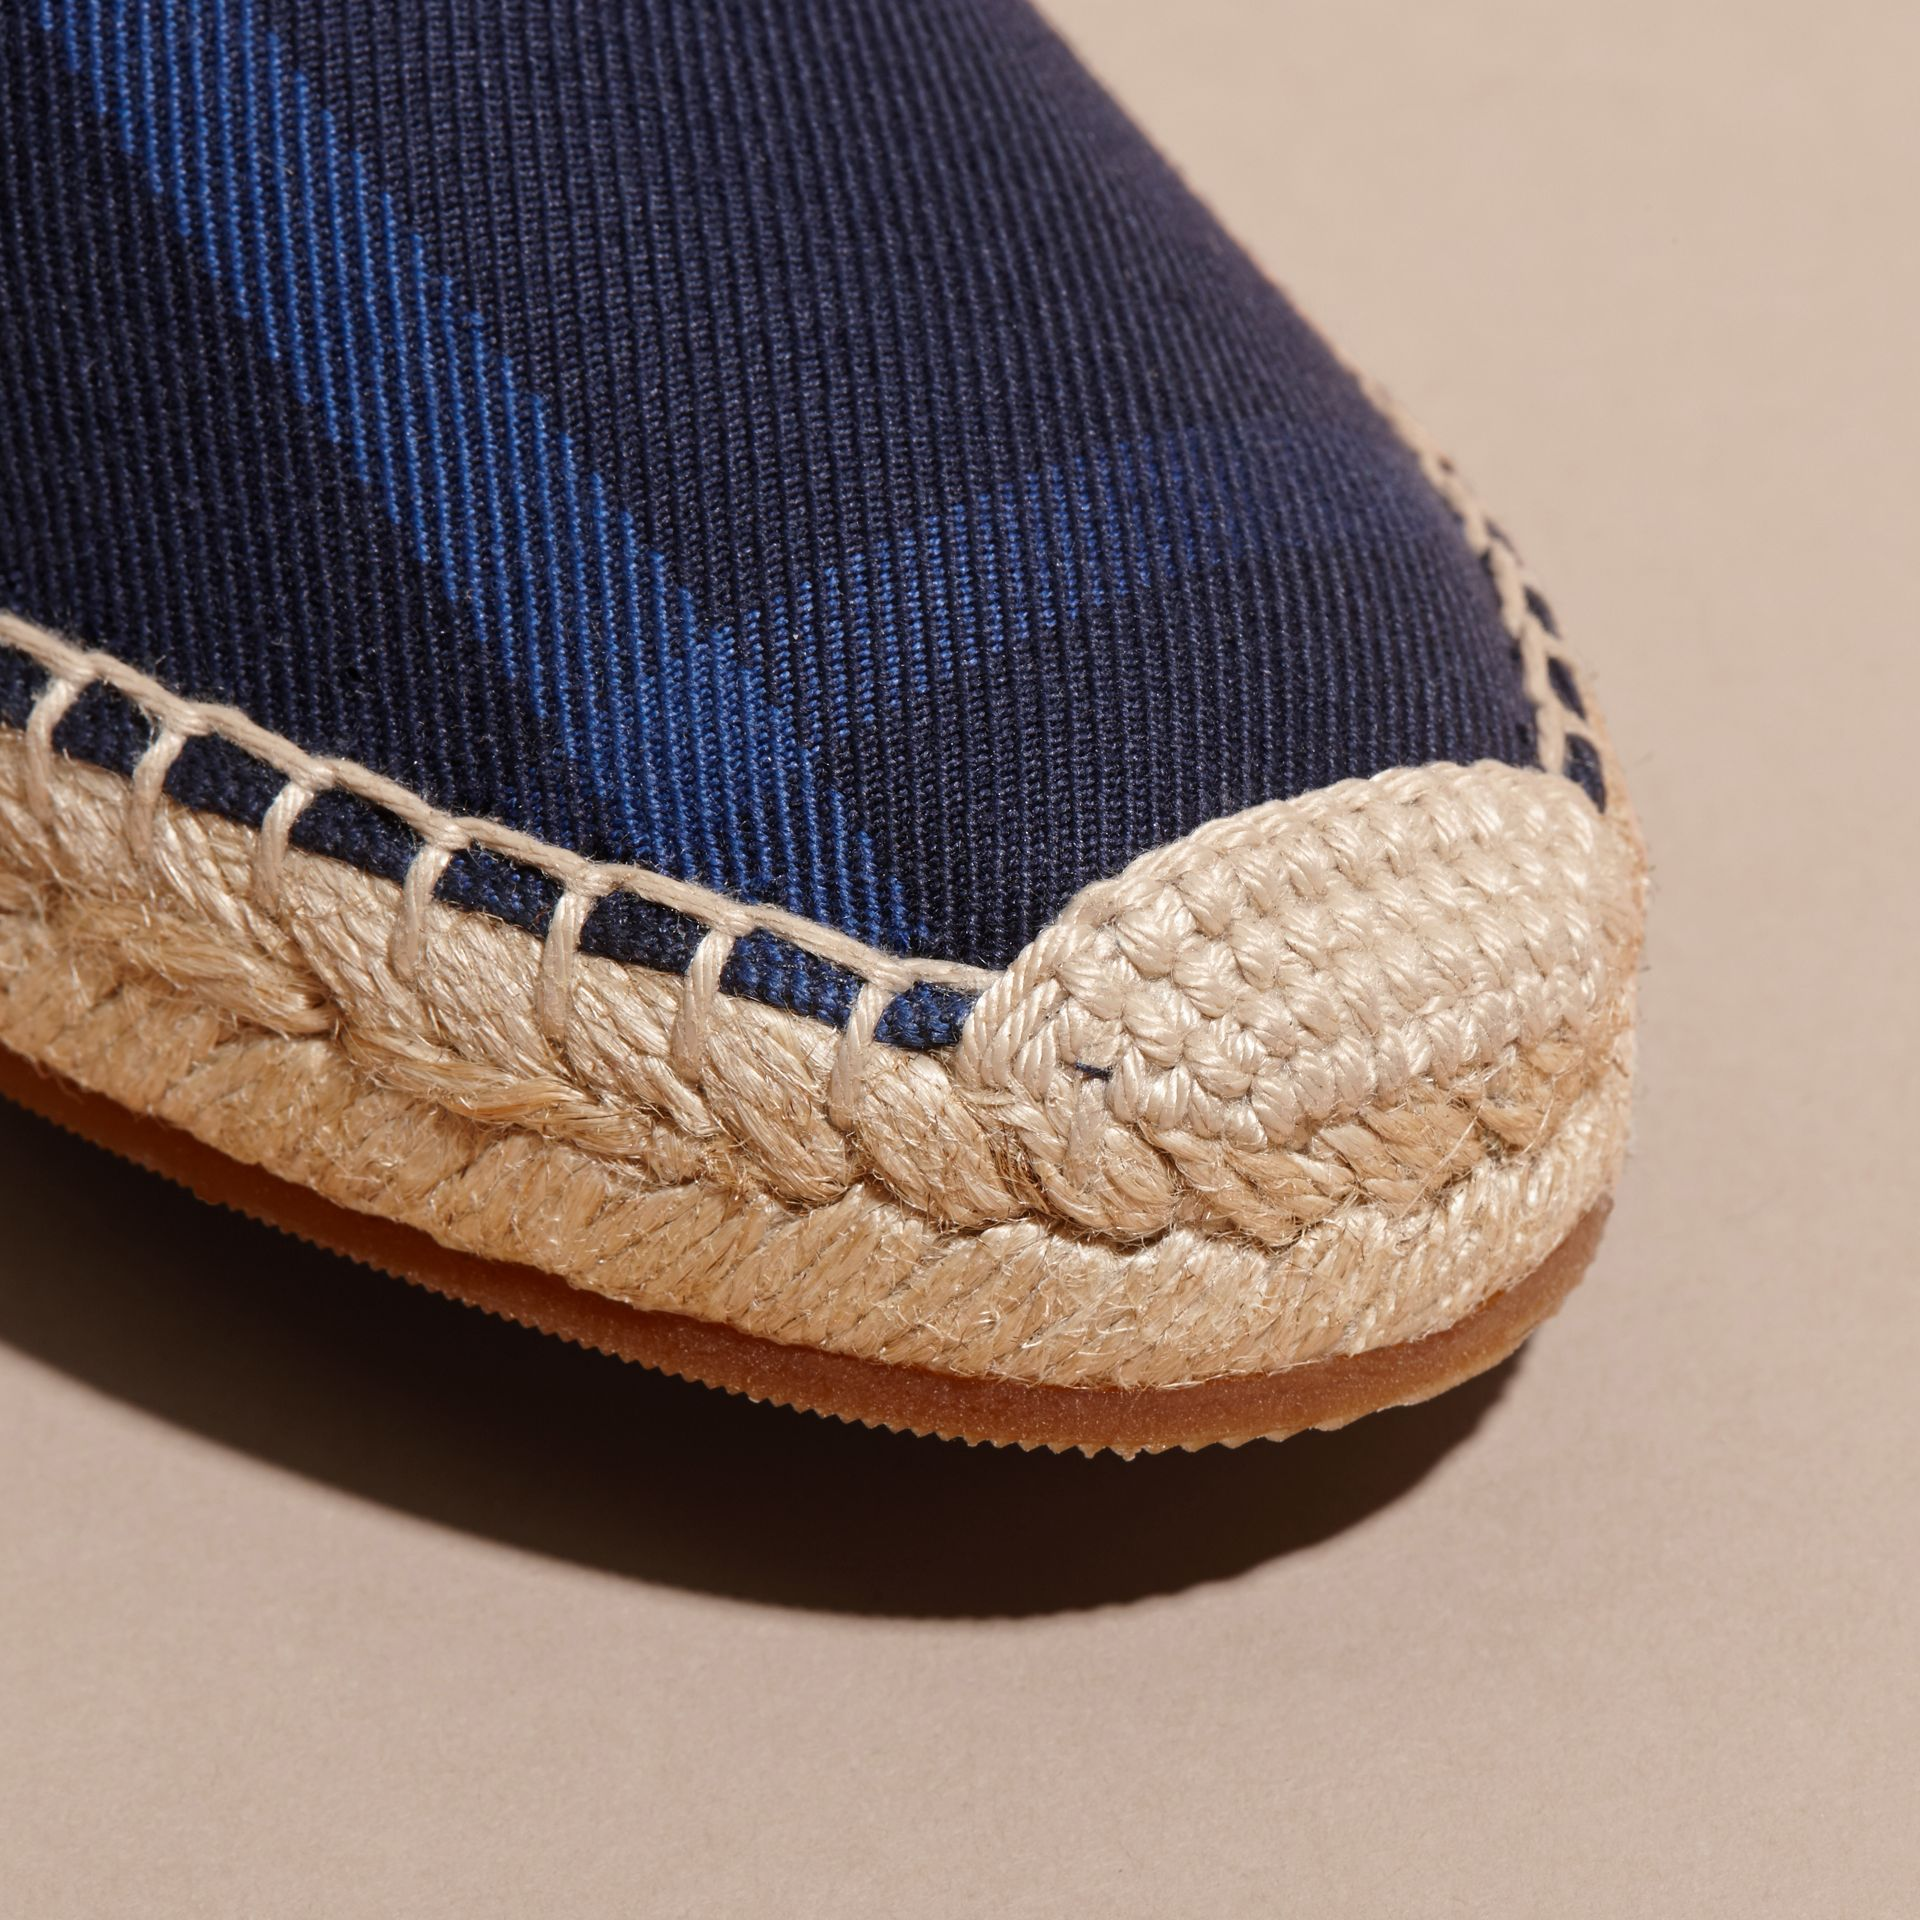 Leather Trim Canvas Check Espadrilles in Indigo Blue - Women | Burberry - gallery image 2